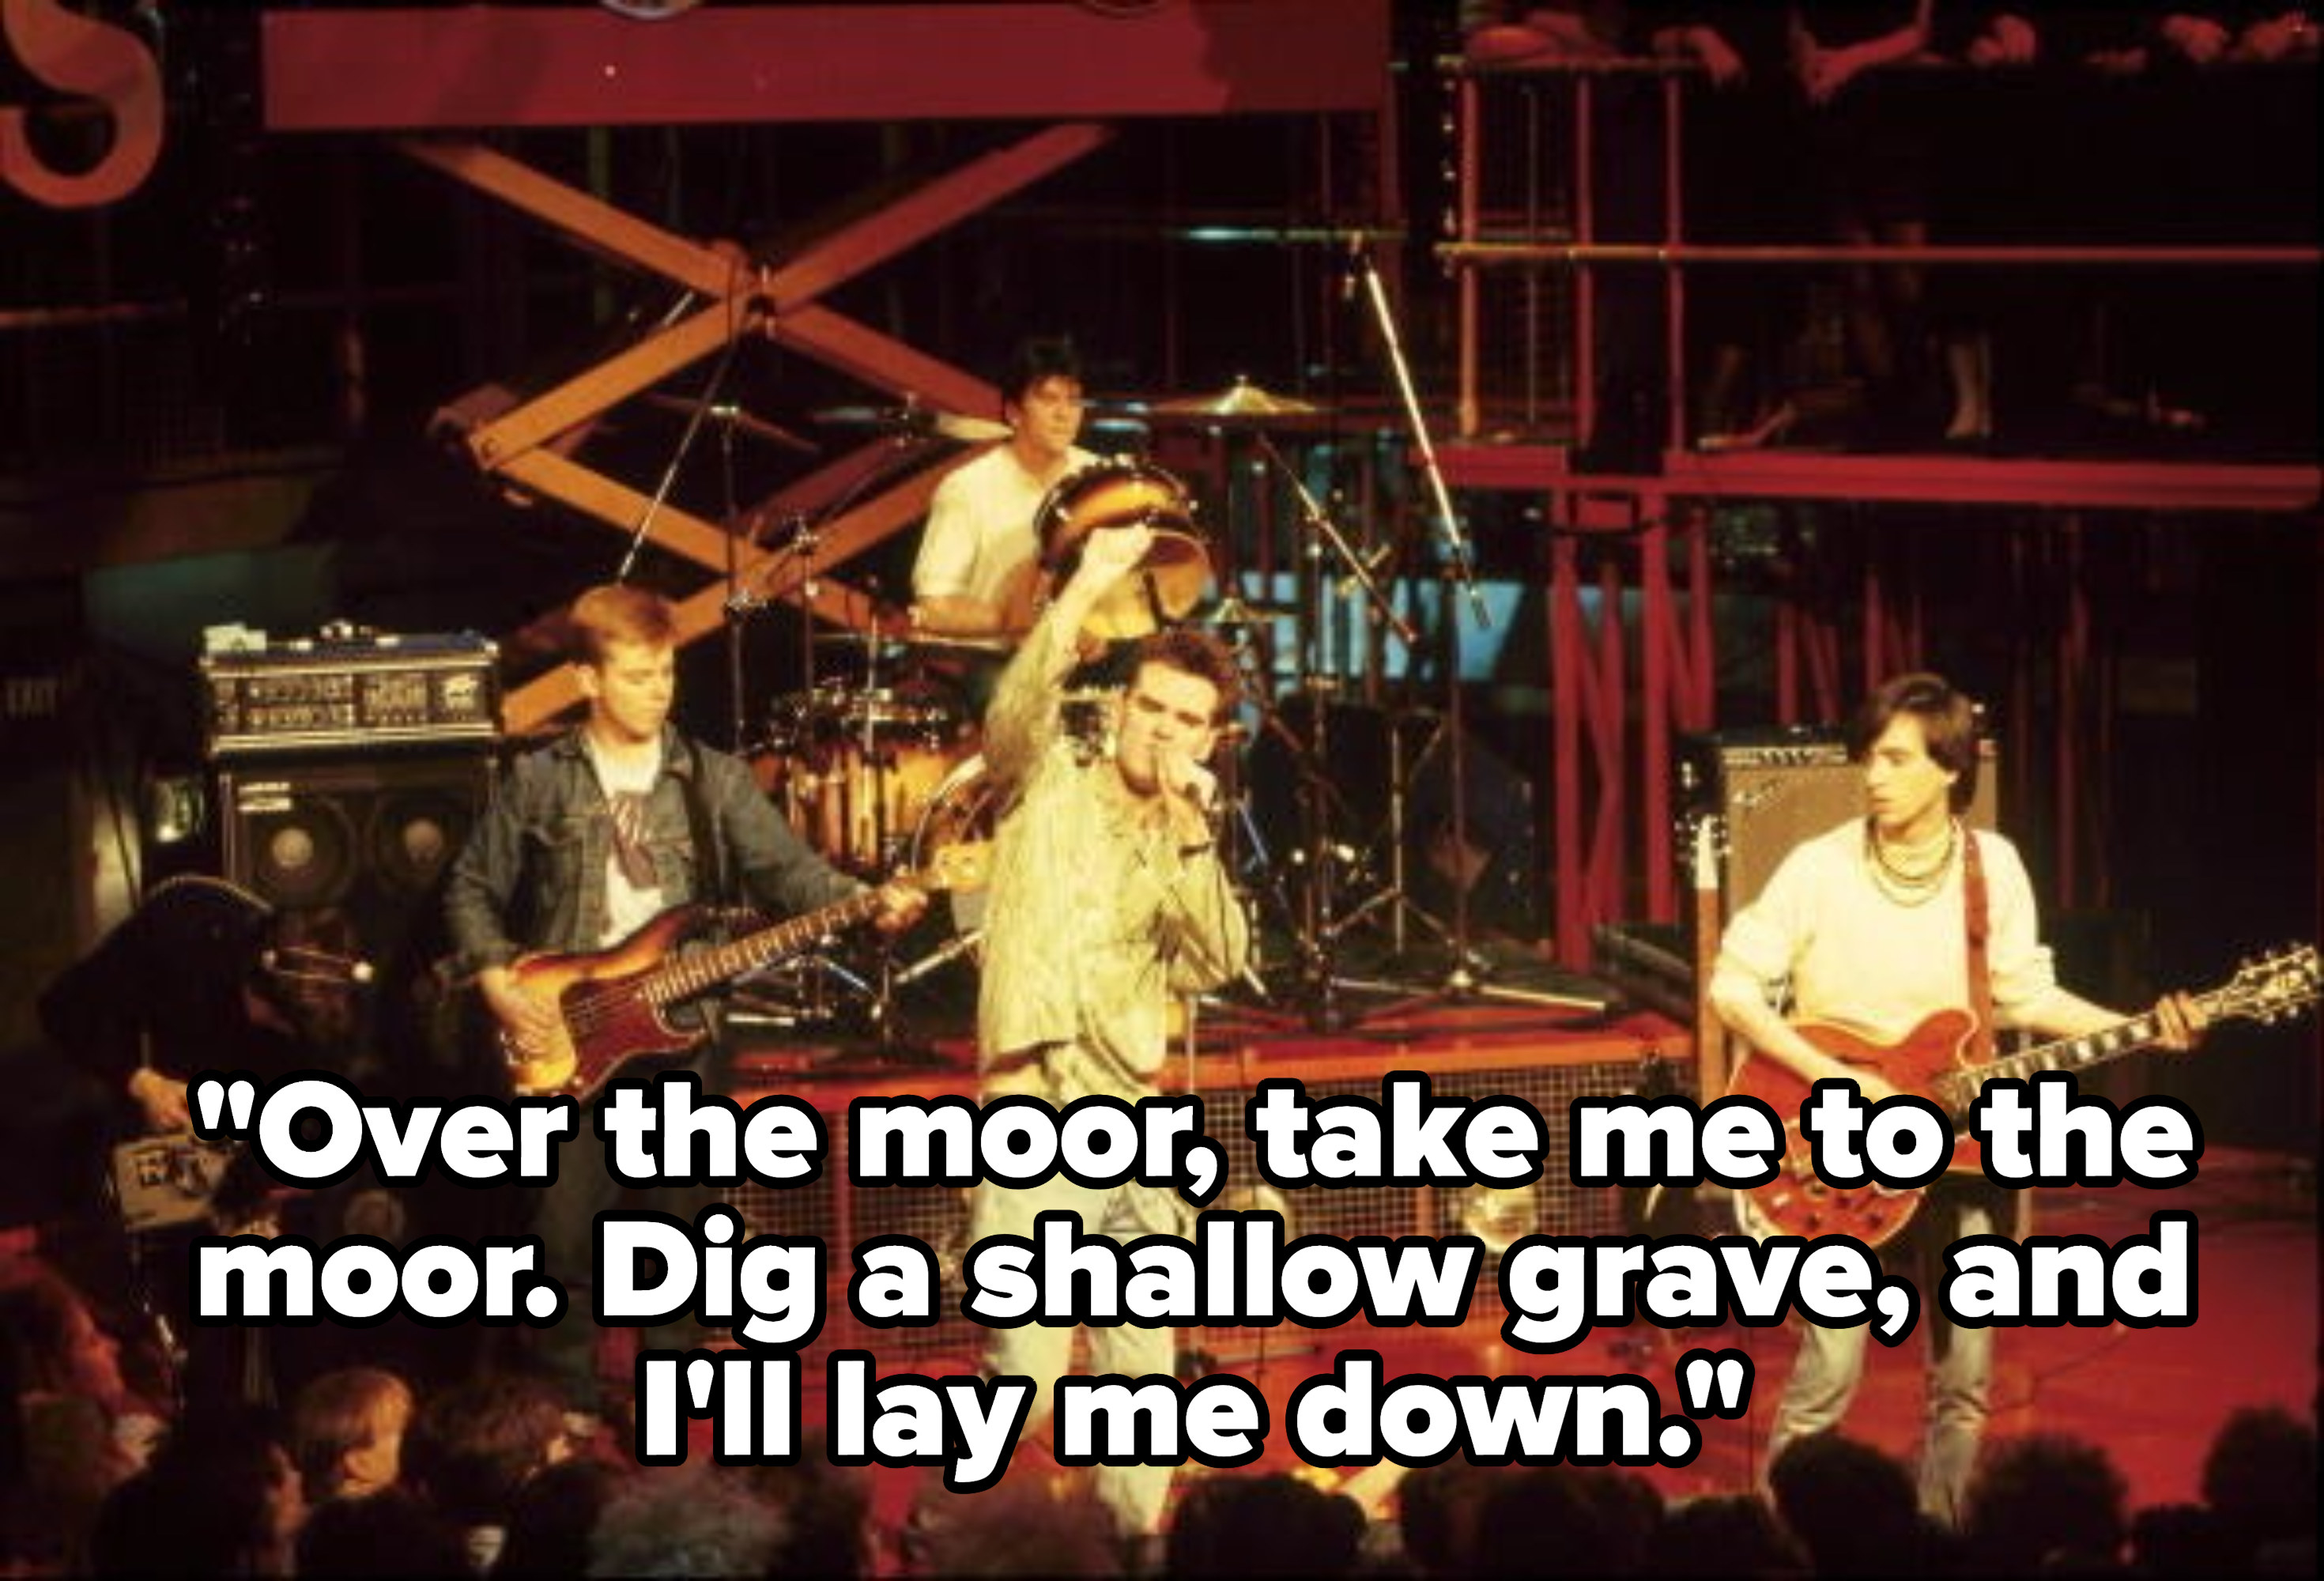 Lyrics: Over the moor, take me to the moor, dig a shallow grave, And I'll lay me down